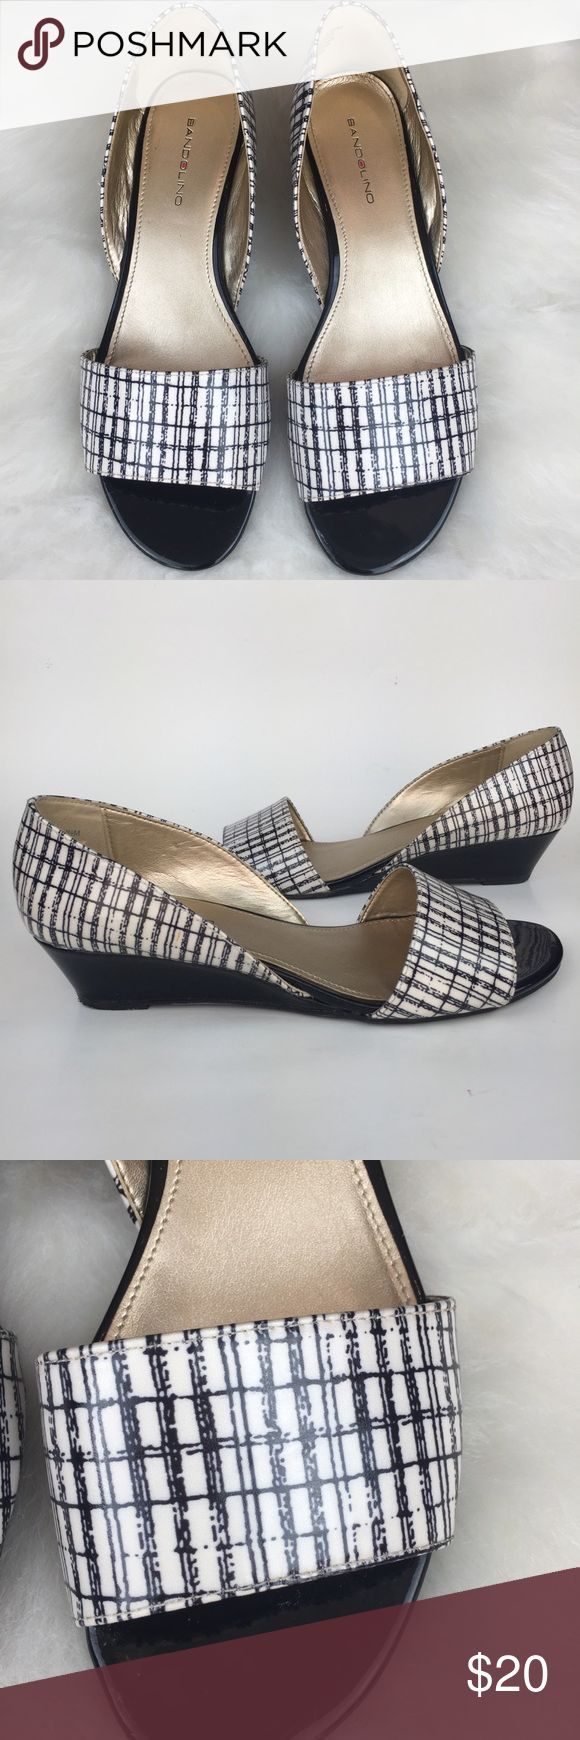 "Bandolino black and white wedges Bandolino black and white patent D'orsay flats in excellent condition!  Heels measure 1 1/2"".    (CCP1) Bandolino Shoes Wedges"